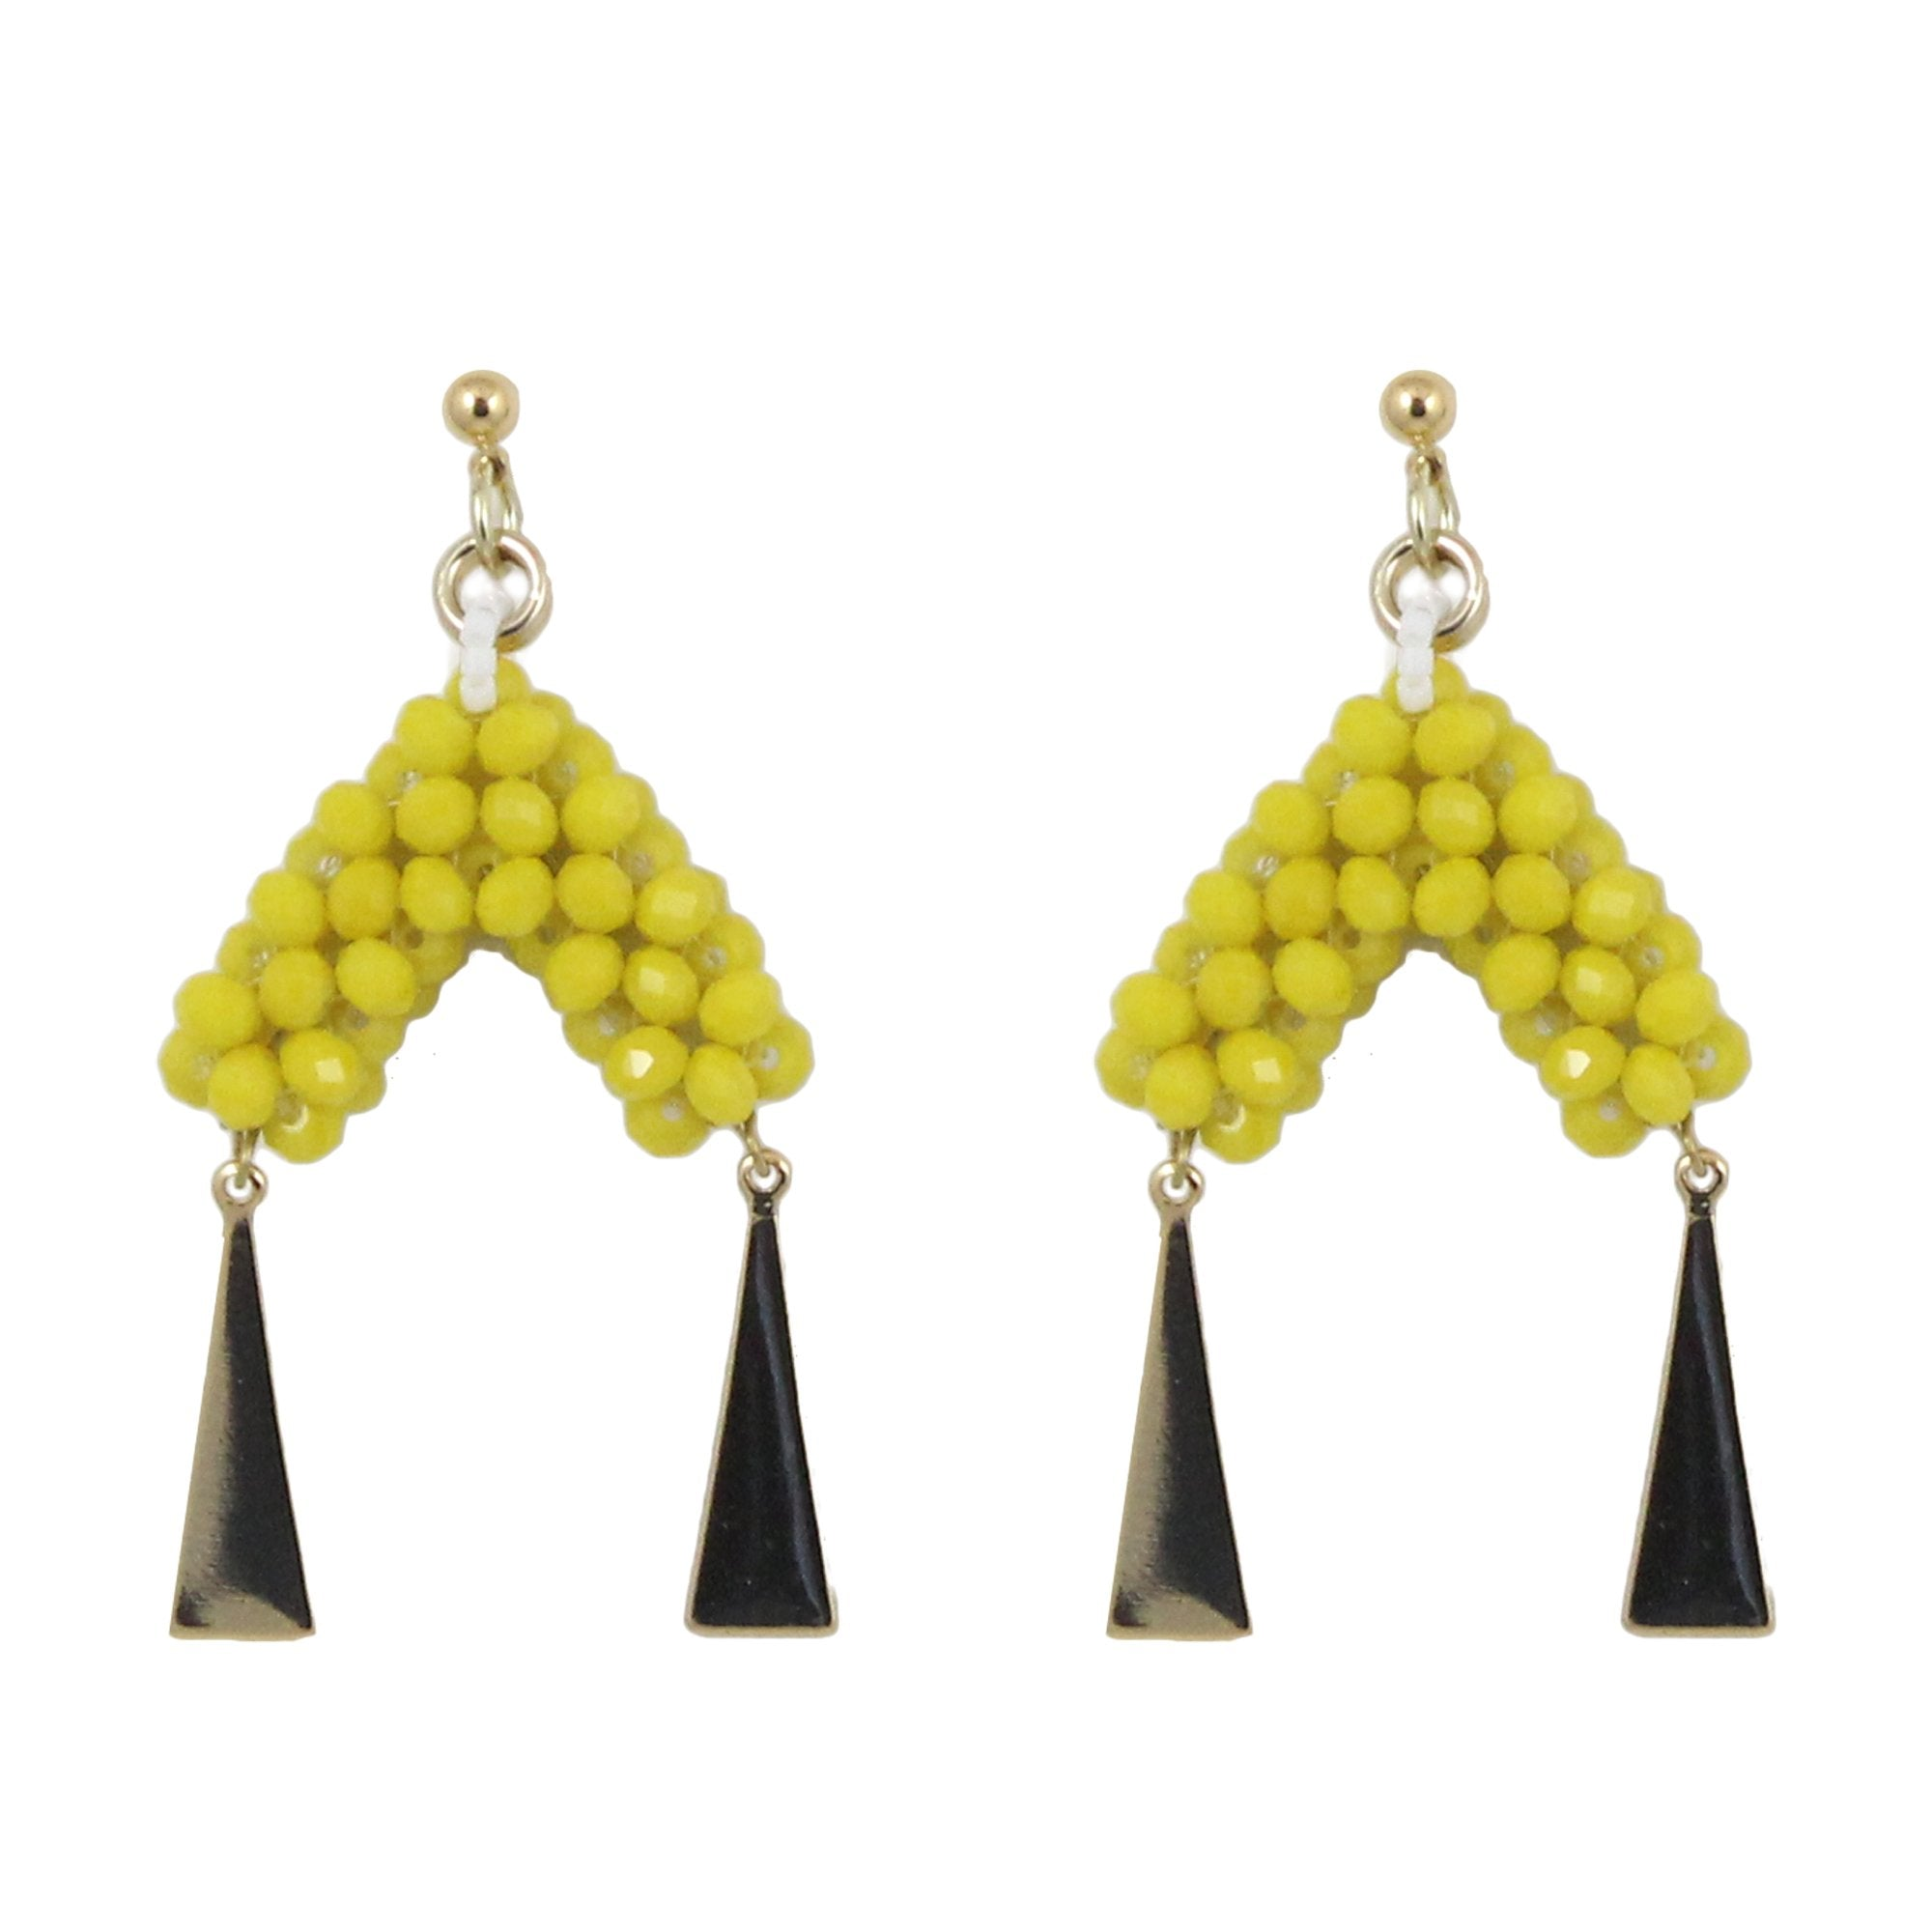 VOLLA earrings - 50% OFF